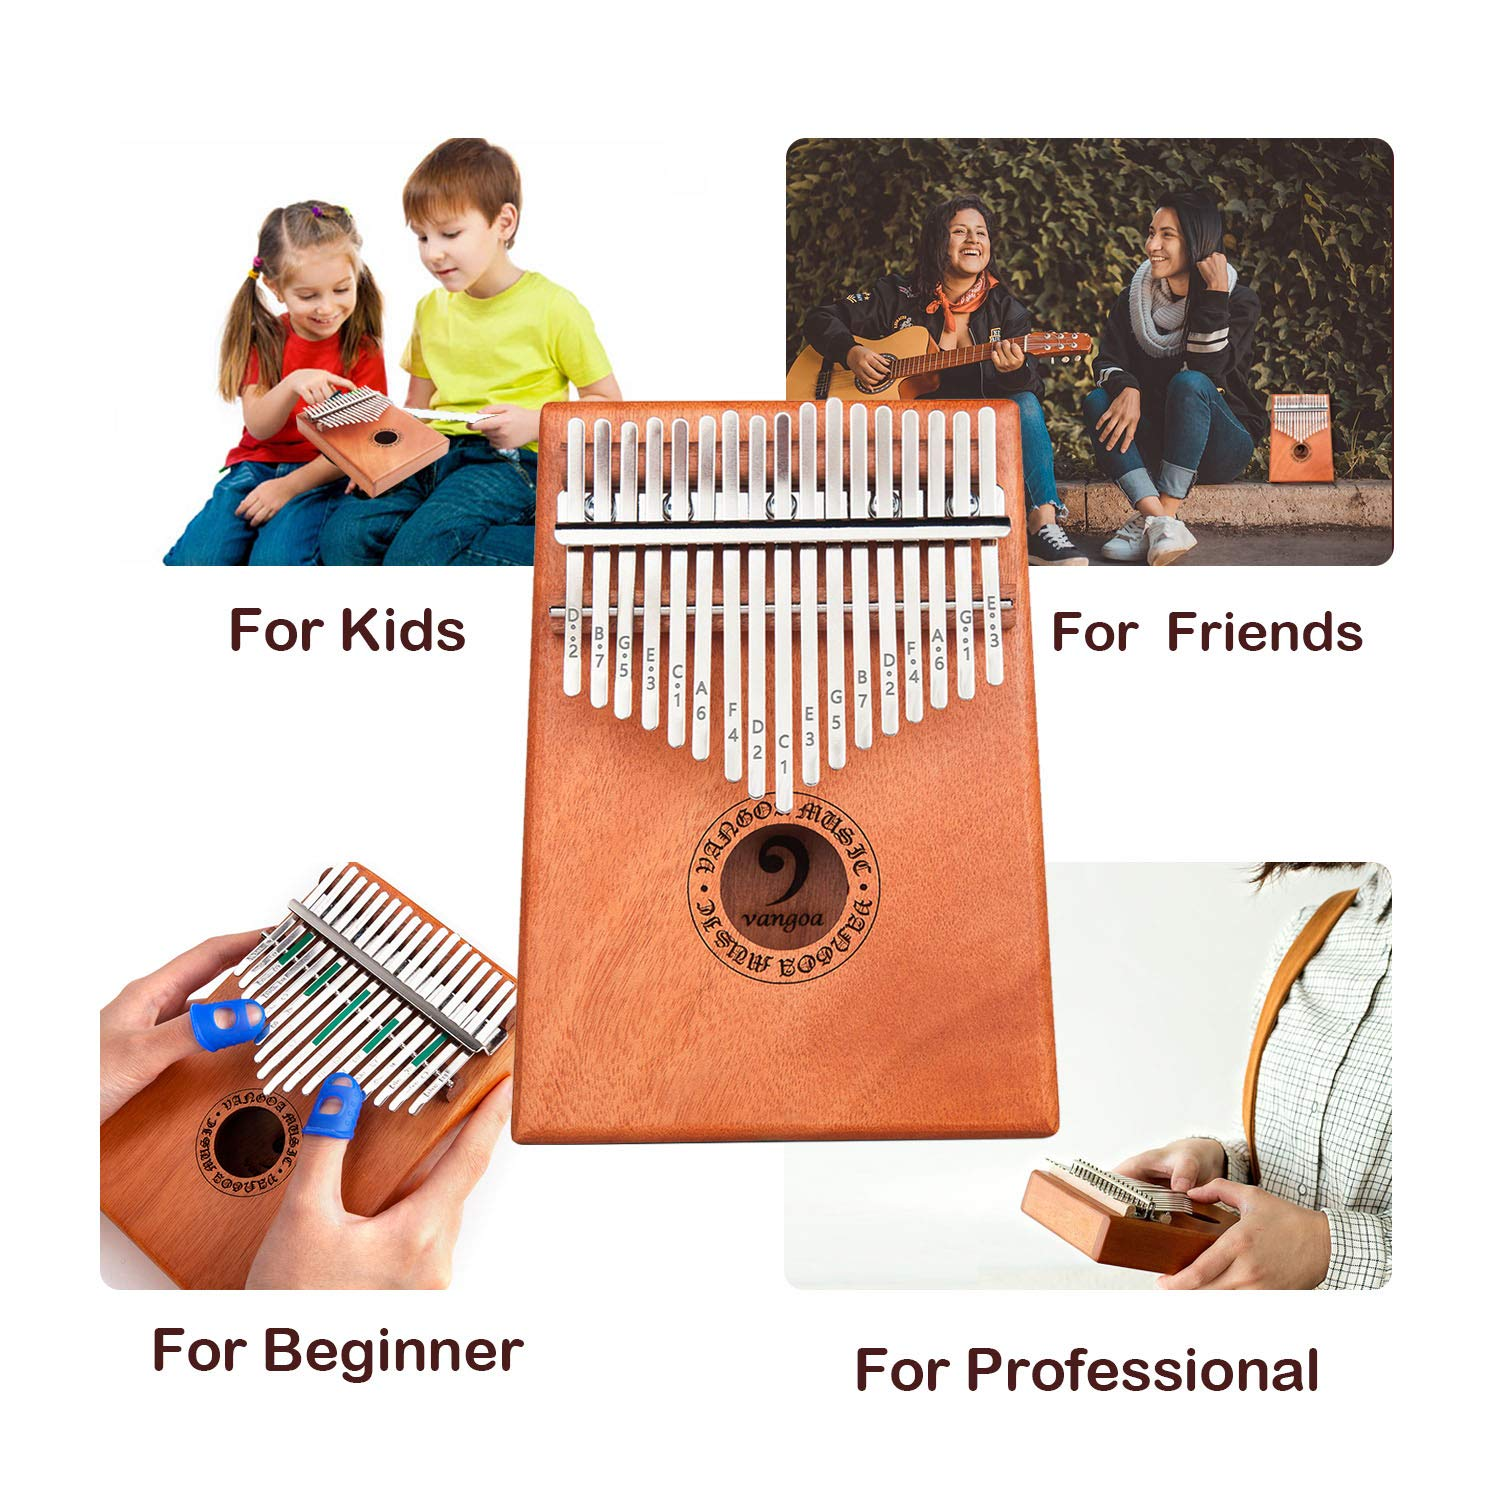 Vangoa Kalimba 17 keys African Thumb Piano kit with Rubber Finger Guards, Tuning Hammer, Carry Bag, Cloth bag, Pickup and Key stickers by Vangoa (Image #6)